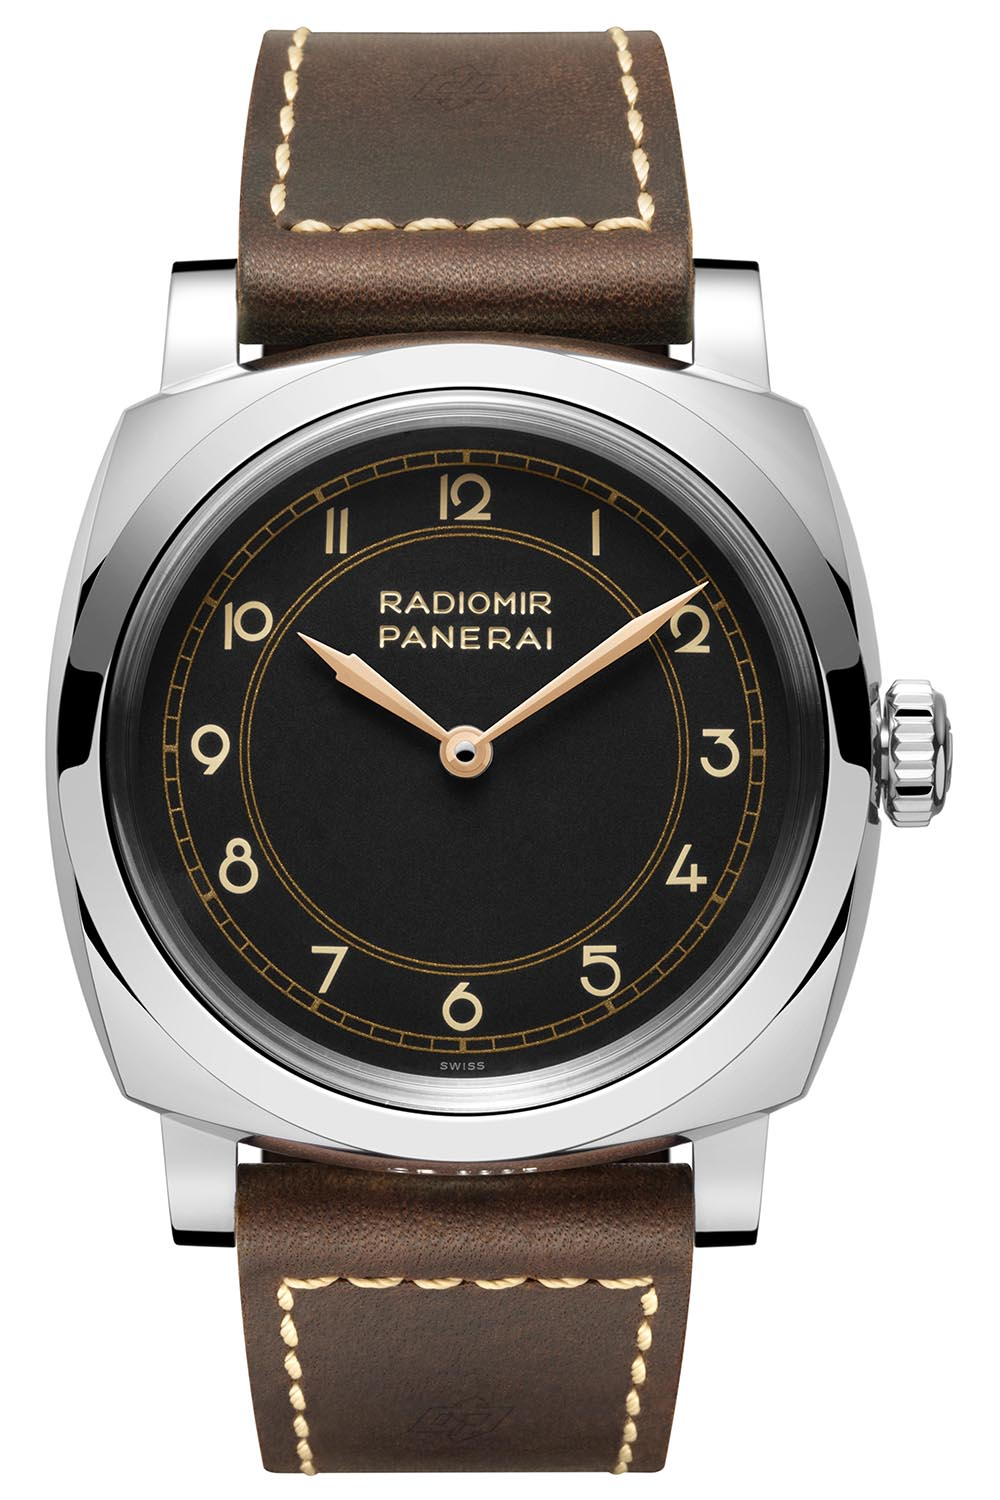 Introducing Panerai Radiomir 1940 Art Deco Pam00790 And